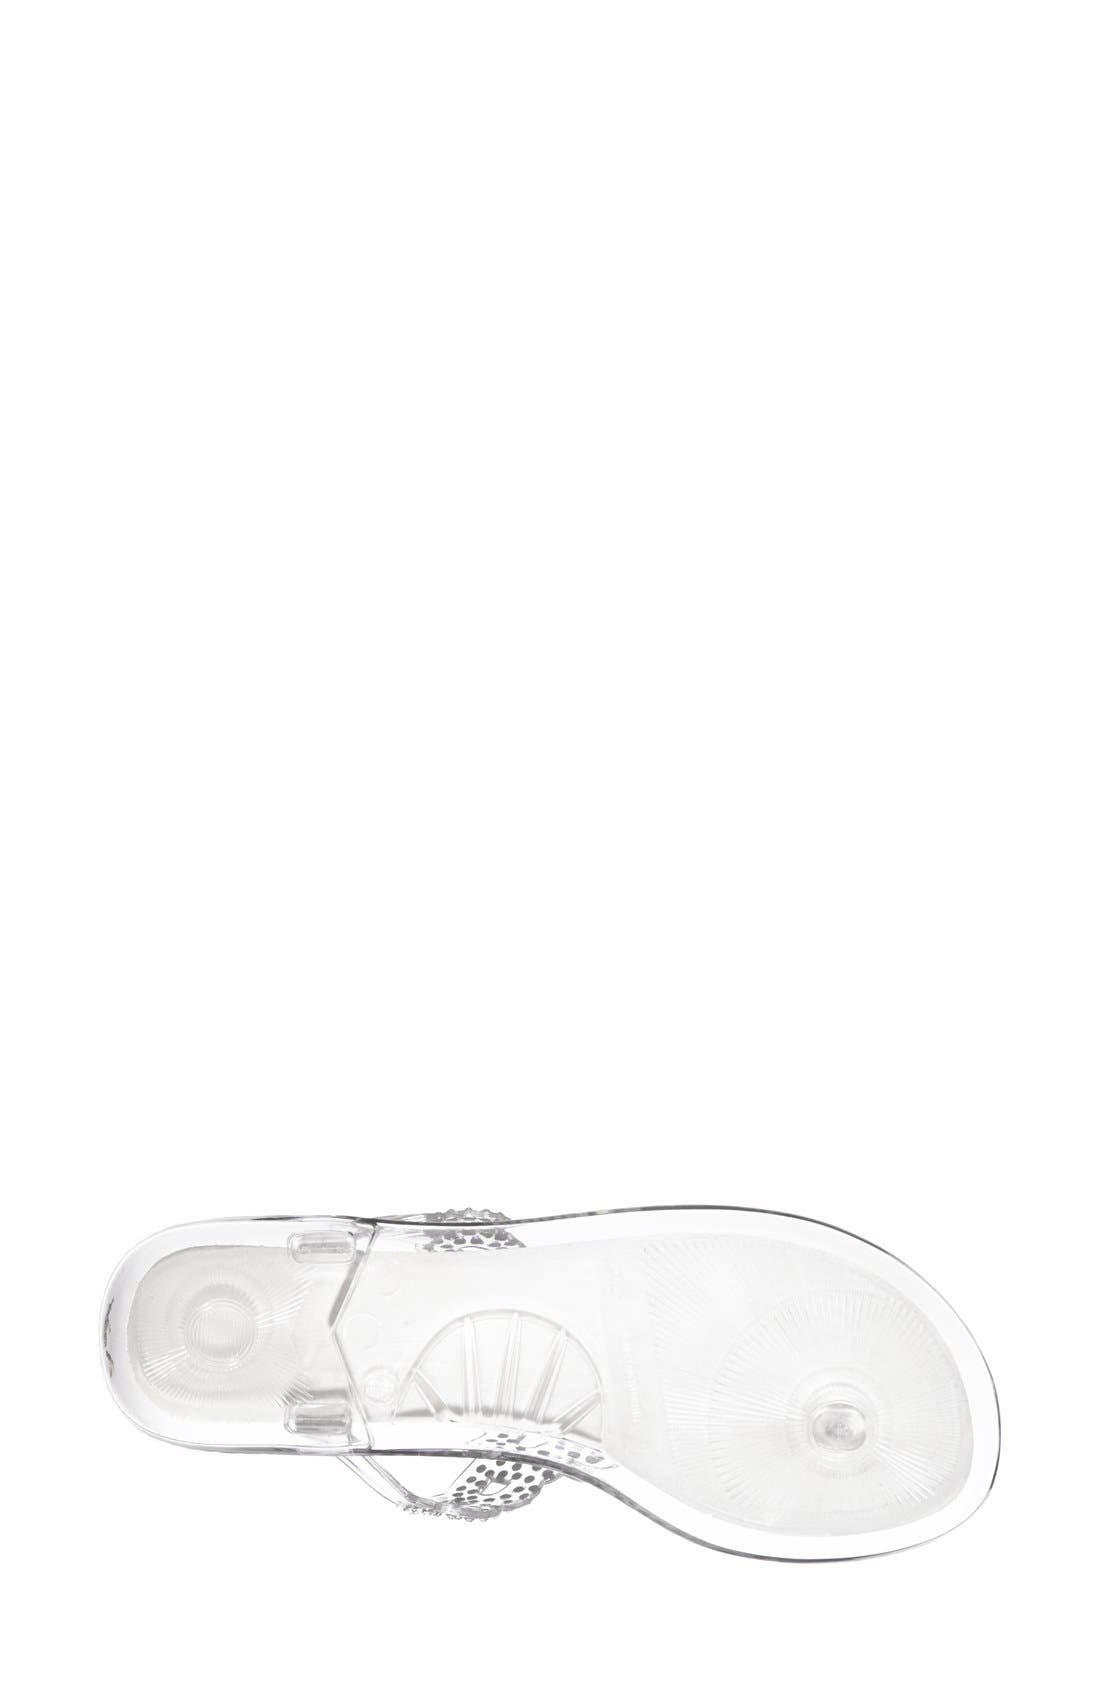 Alternate Image 3  - Stuart Weitzman 'Mermaid' Crystal Embellished Jelly Sandal (Women)